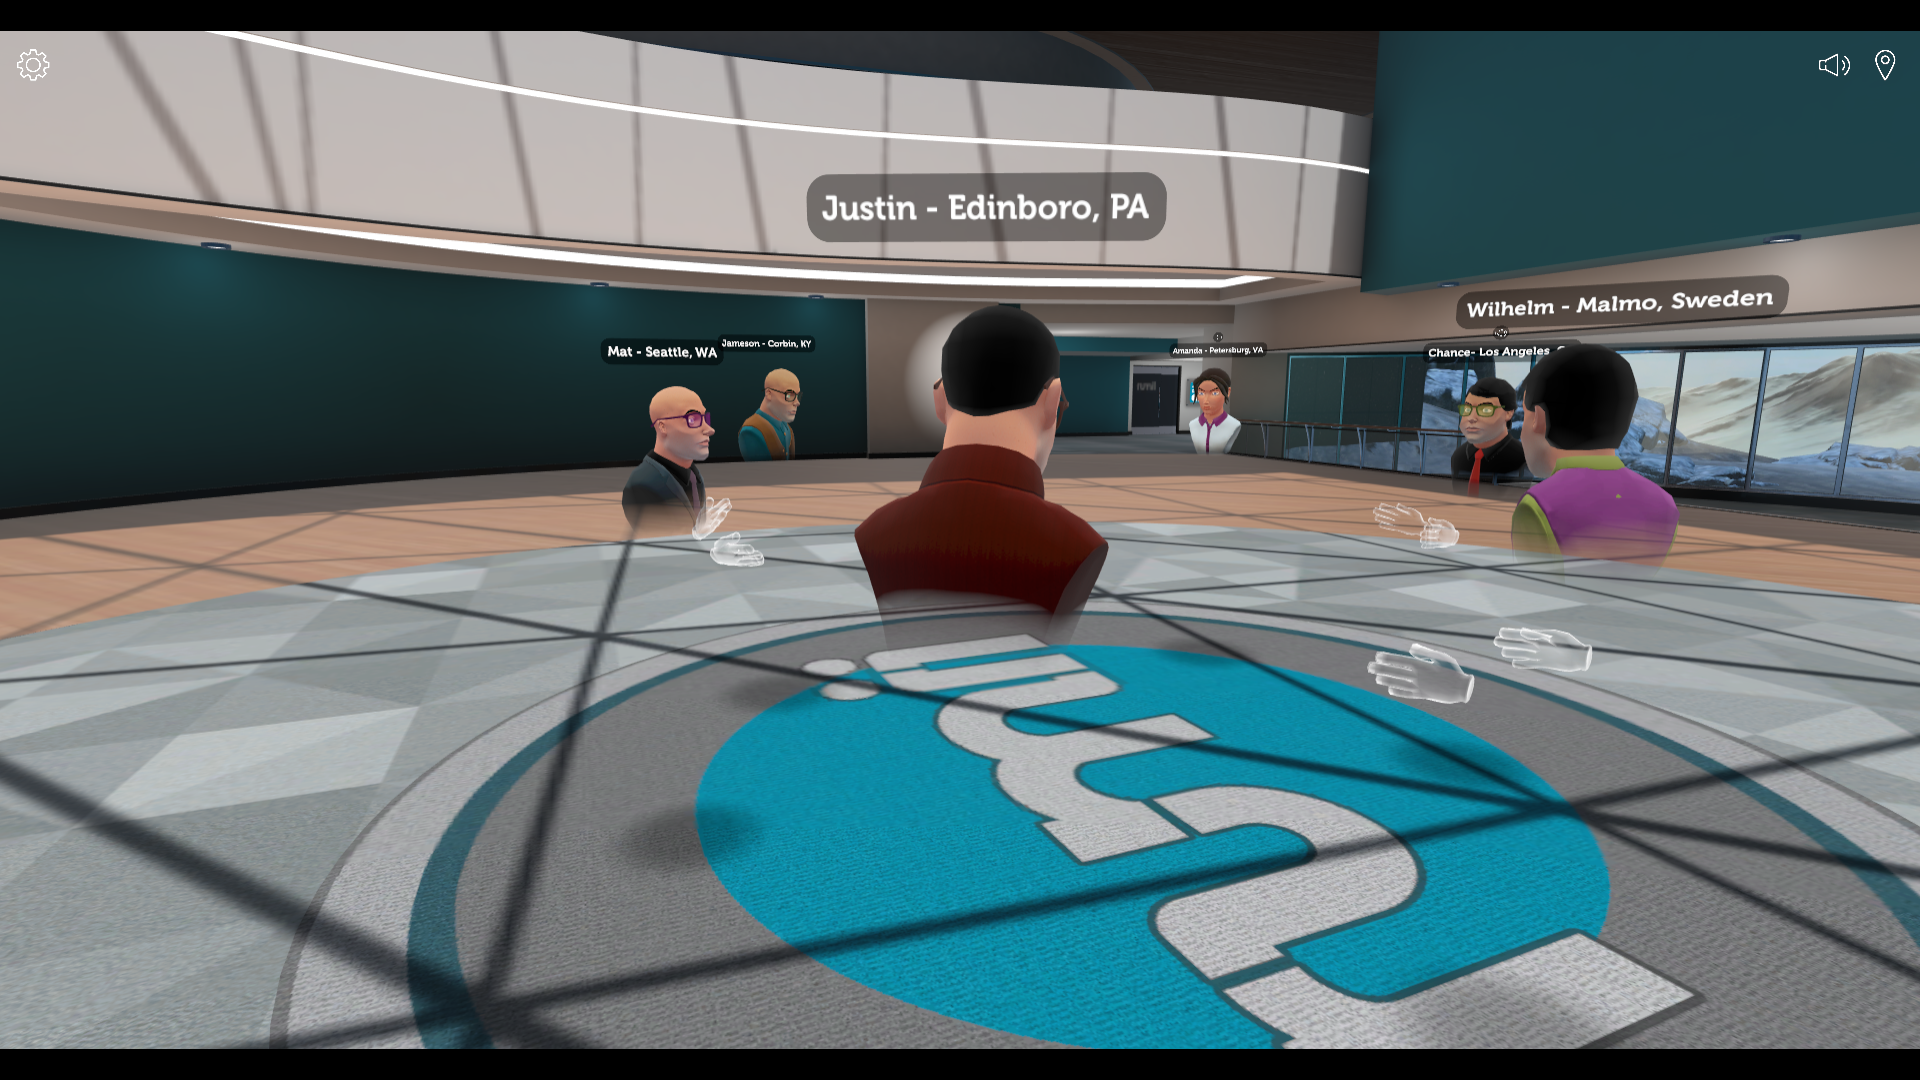 Meeting in VR saves time and travel costs so teams can focus on what's important.